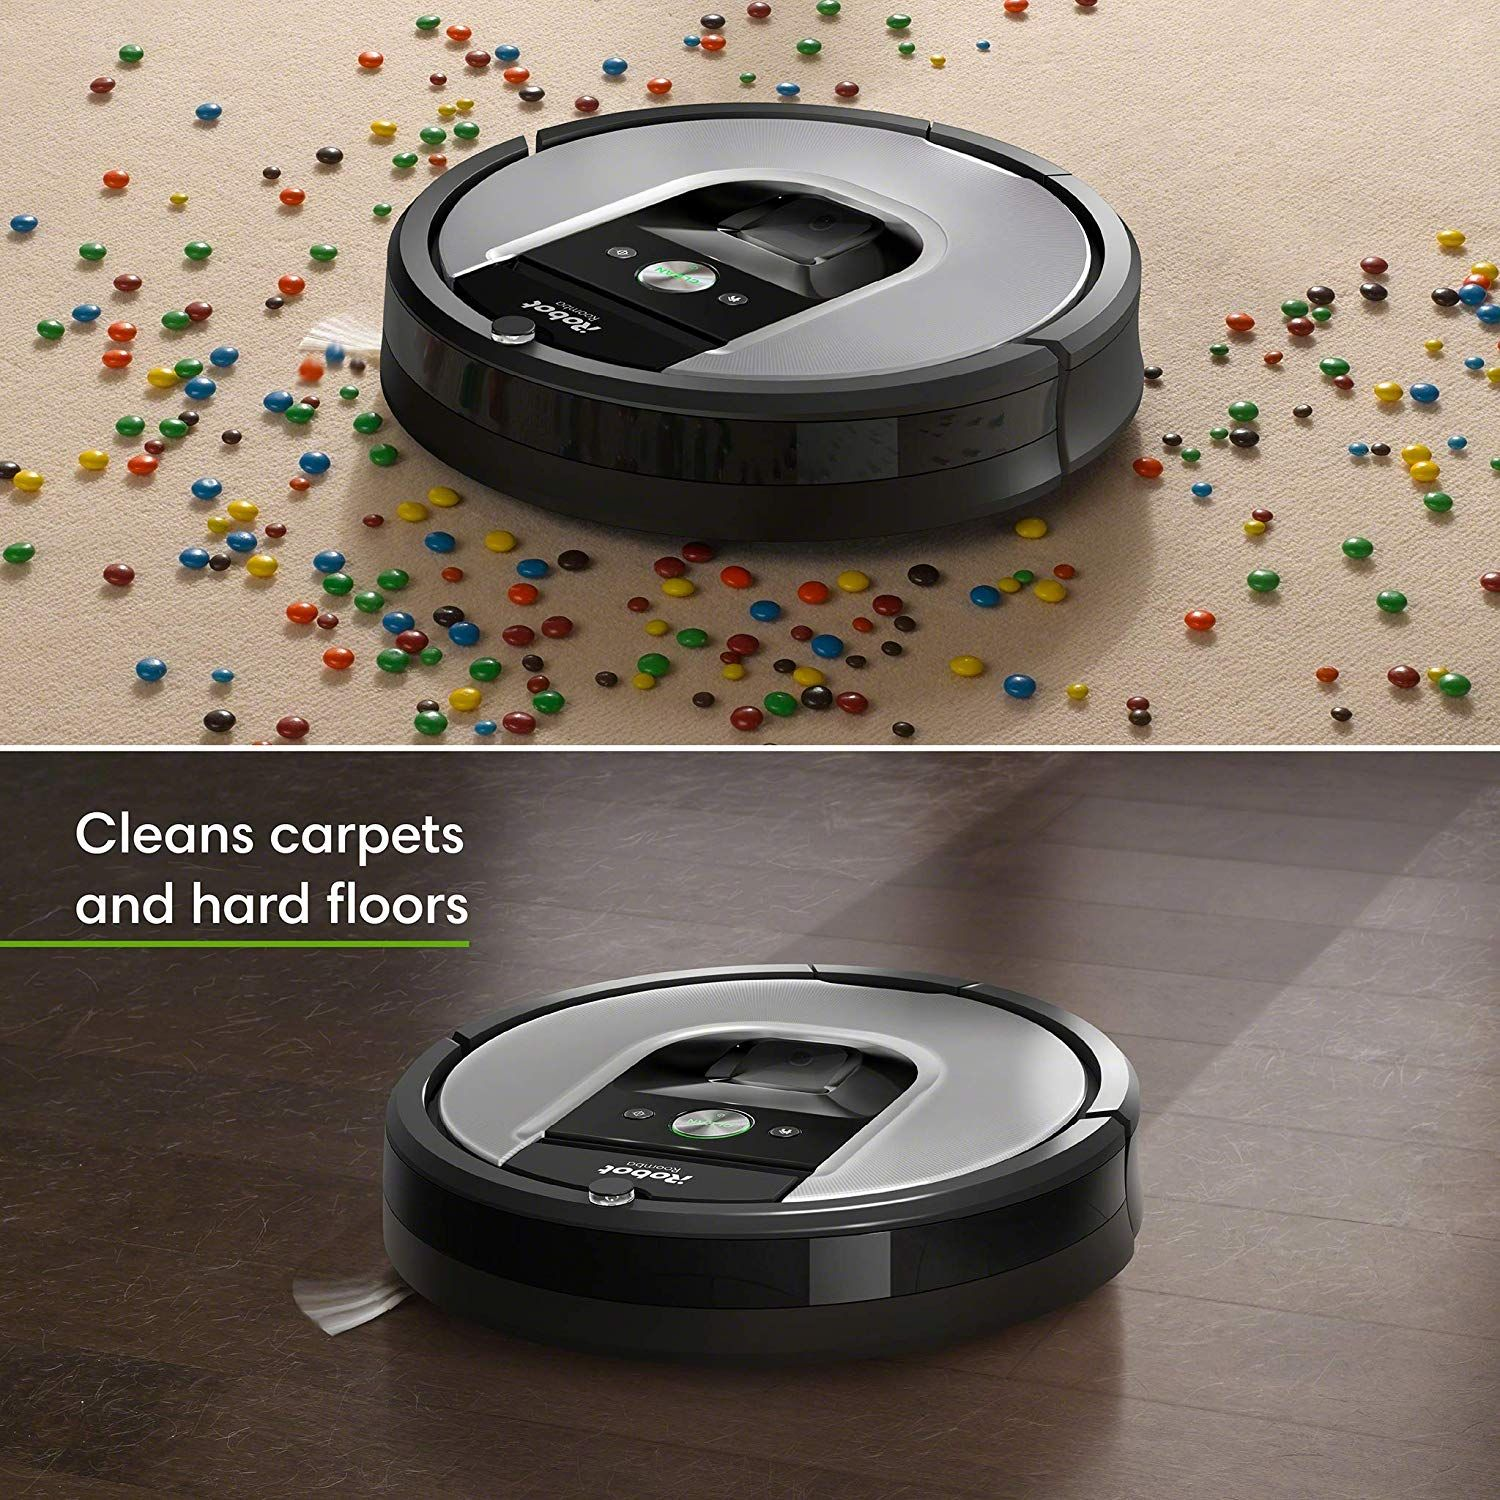 Irobot Roomba 960 Robot Vacuum Wi Fi Connected Mapping Works With Alexa Ideal For Pet Hair Carpets In 2020 Irobot Roomba Irobot Robot Vacuum